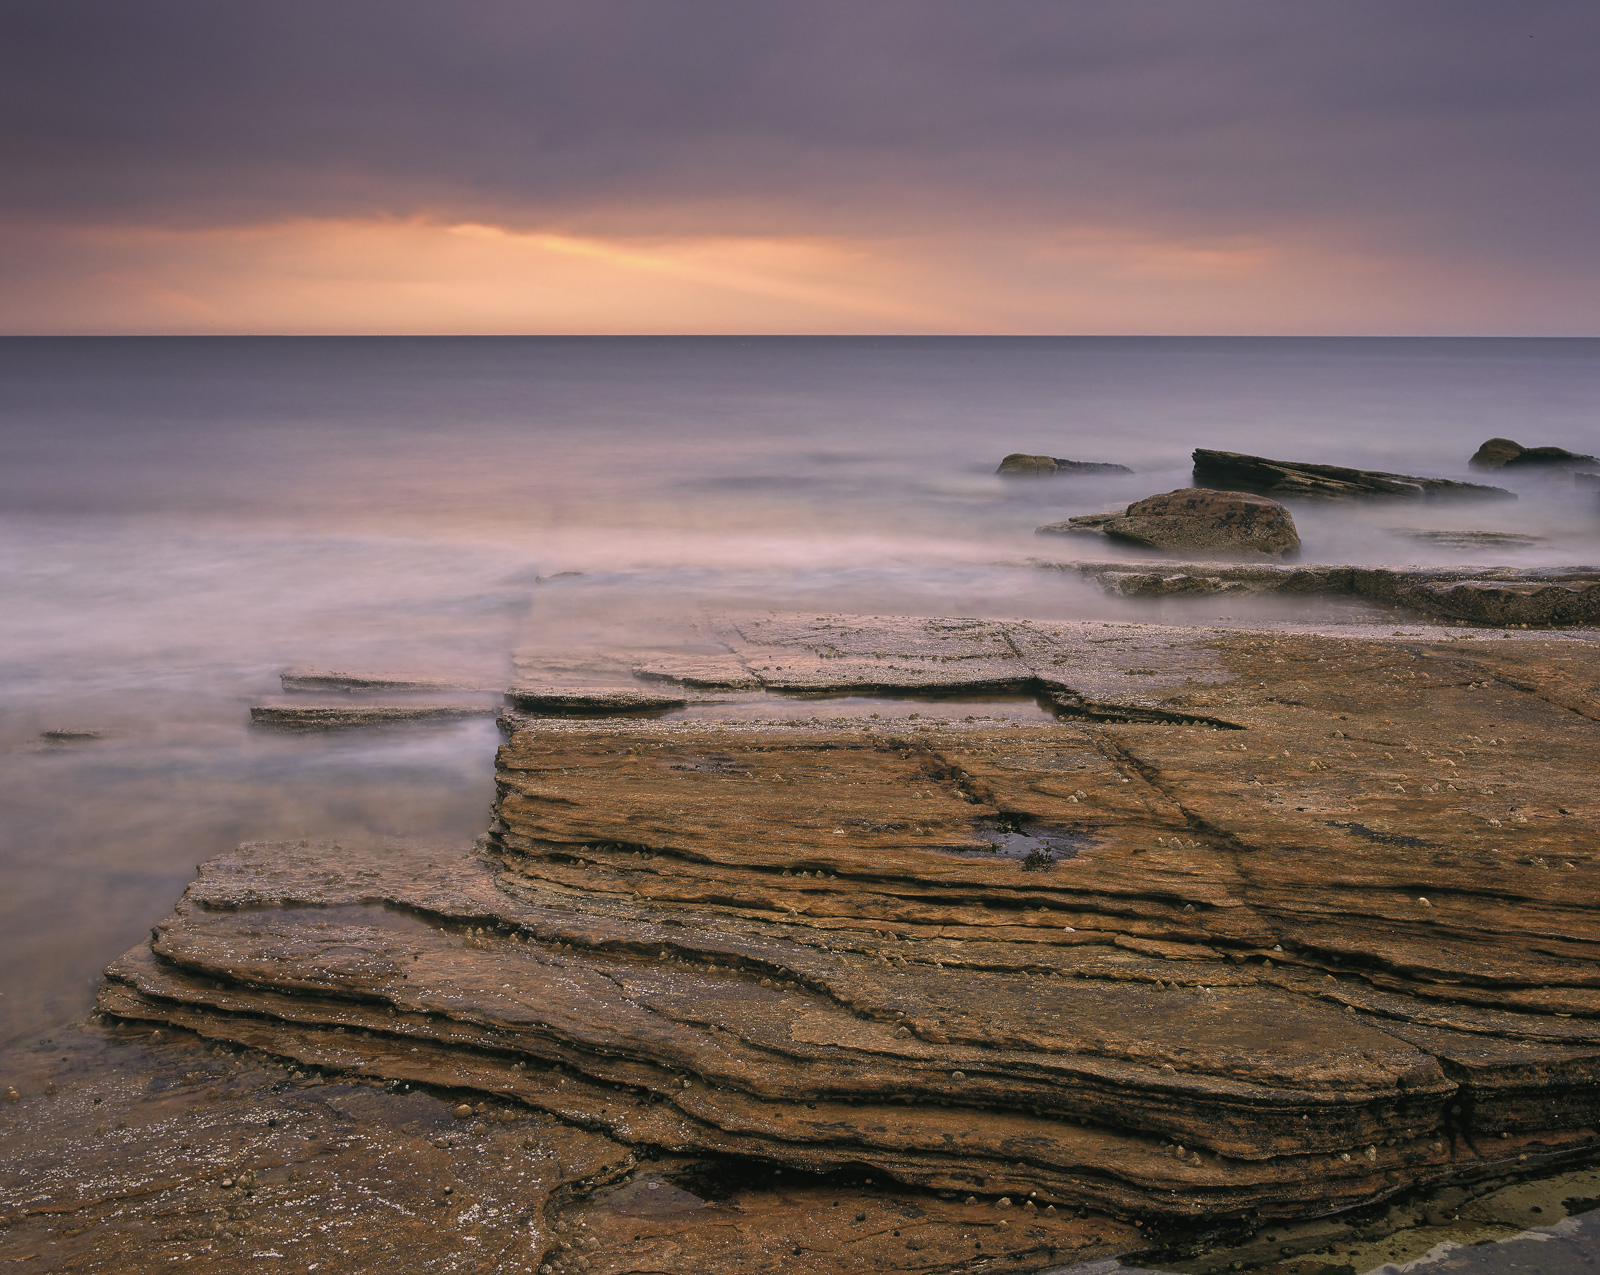 Pancake layered sandstone rocks at Hopeman bay on the Moray coast break off and peel away like ginger snaps while the setting...